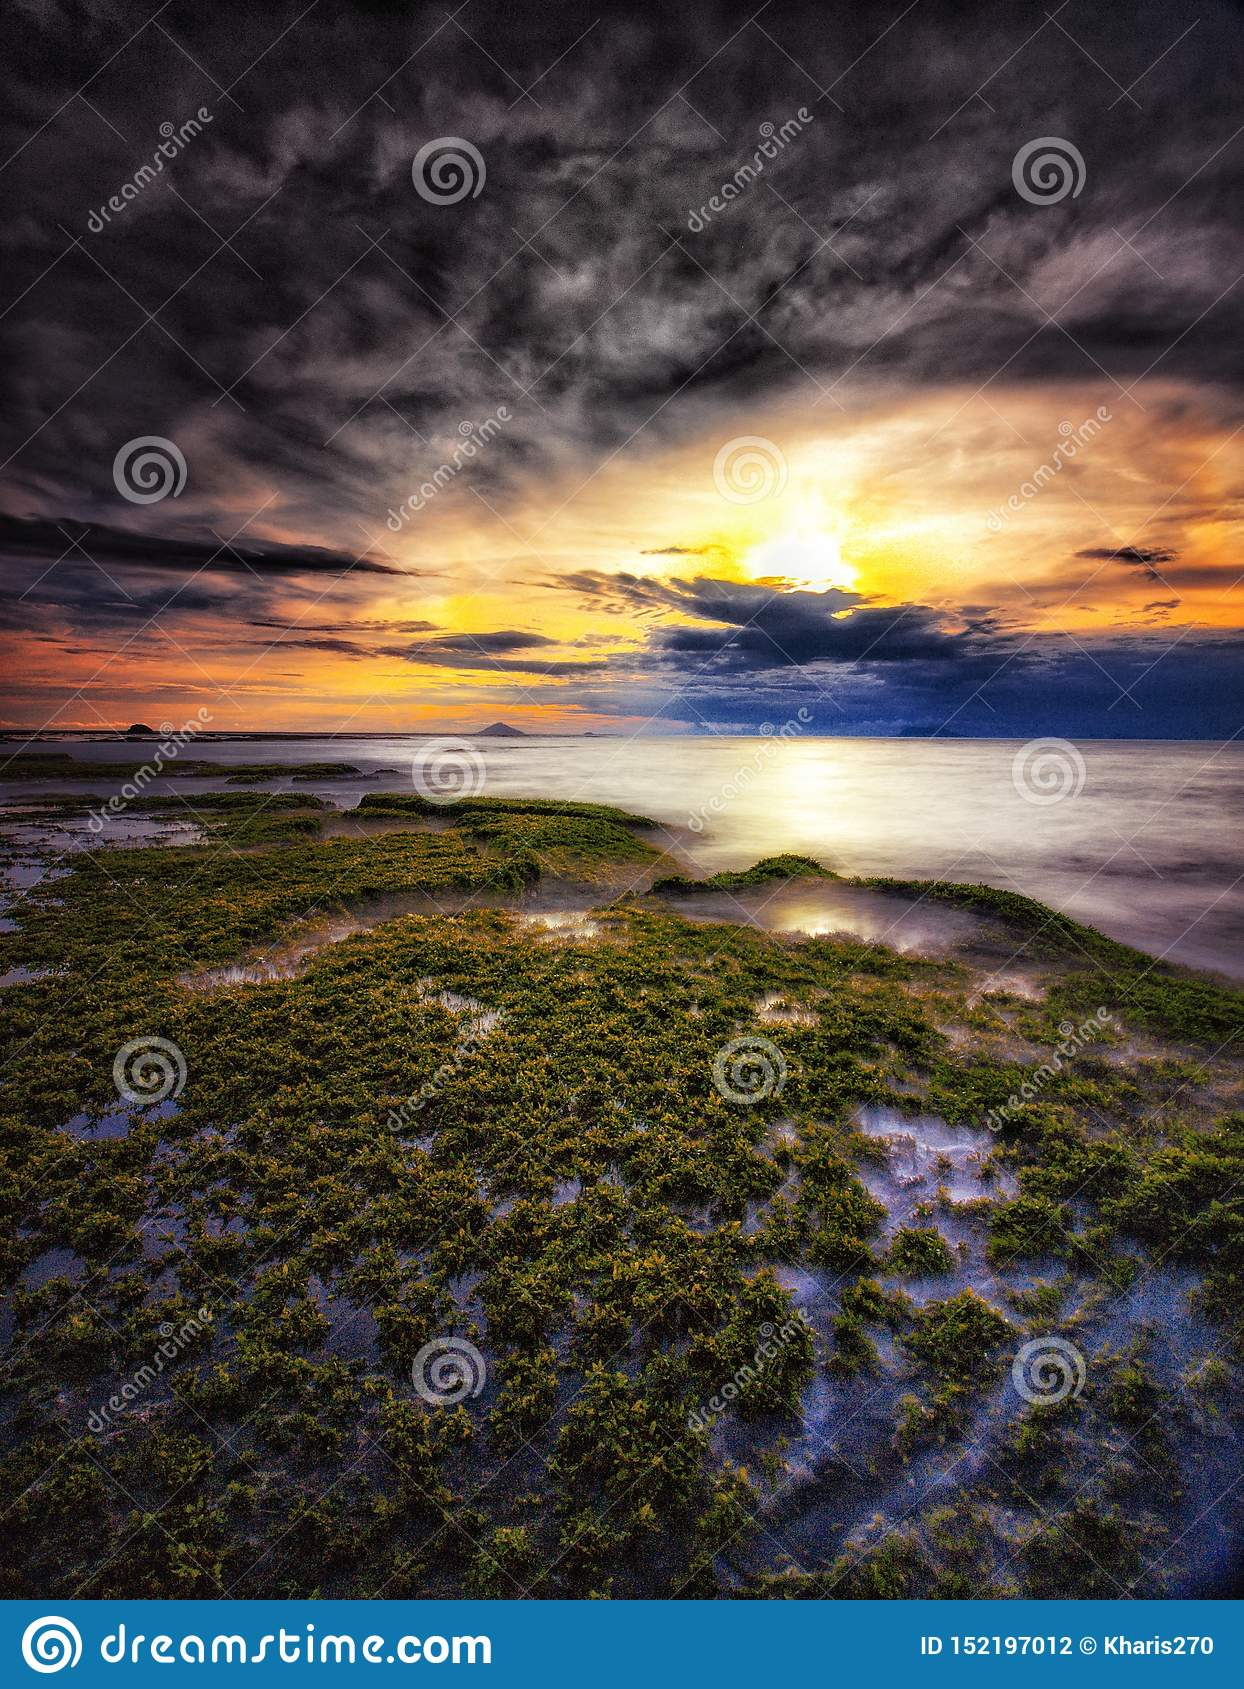 Sunsets sea ocean beach stock photo. Image of live, ecology ...